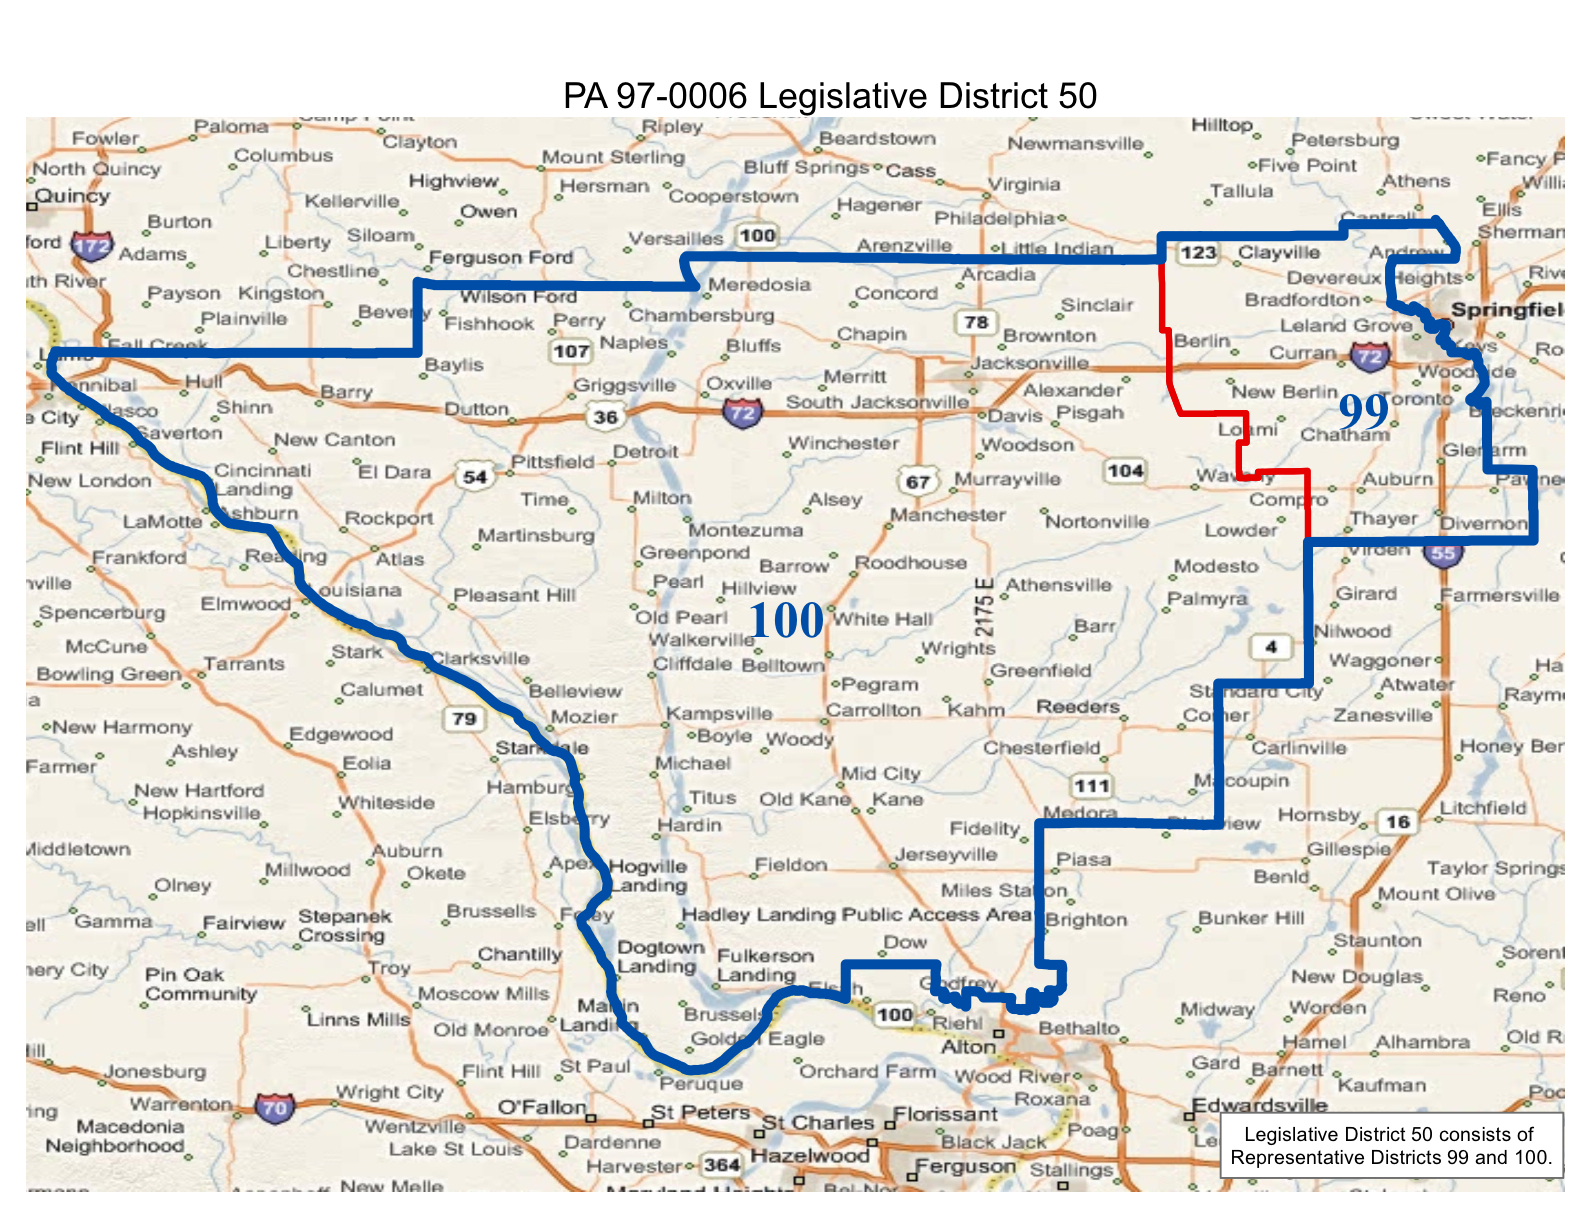 map of realigned illinois state senate district 50 and state representative districts 99 and 100